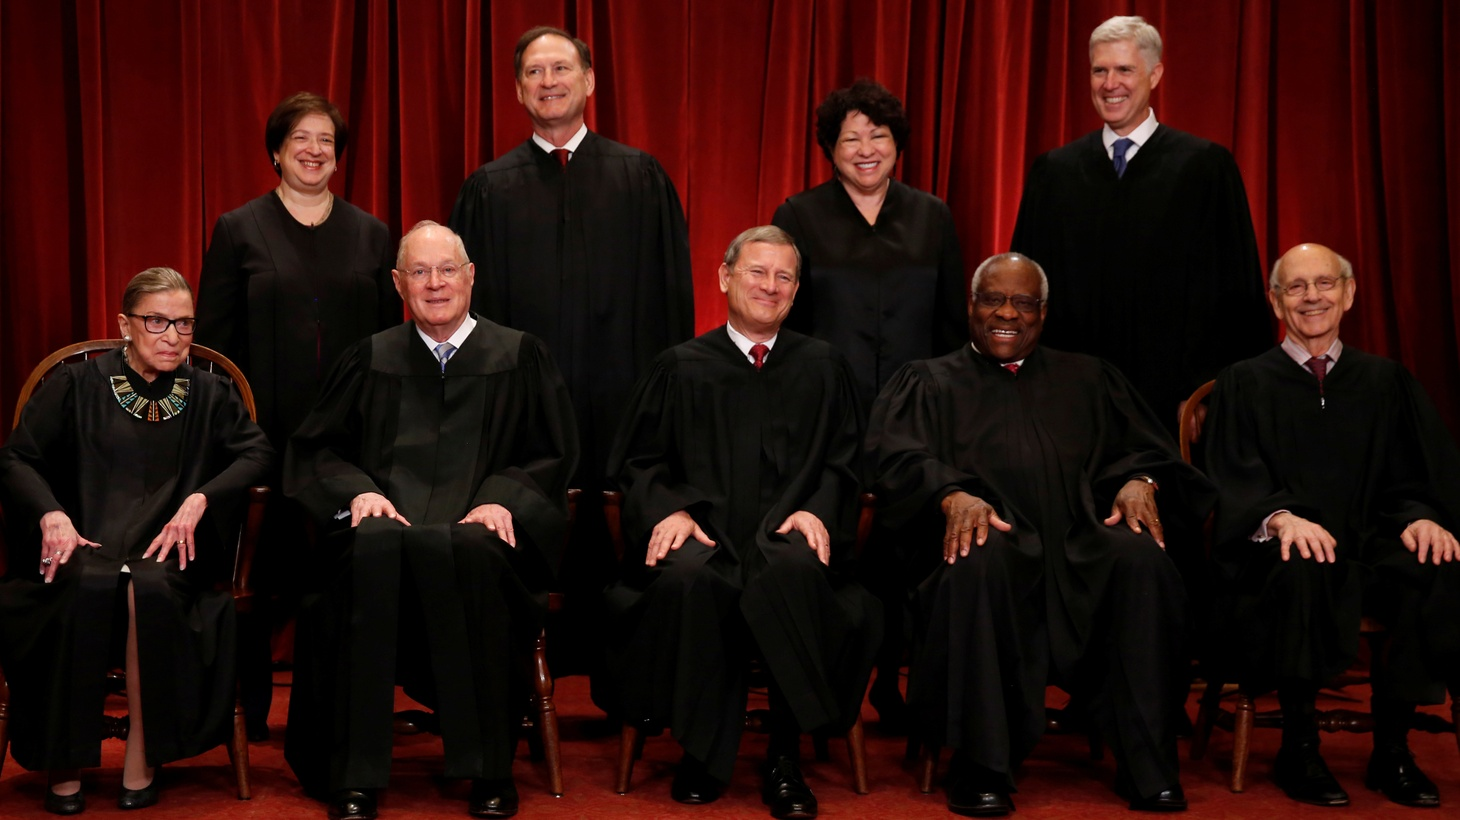 With all nine members now in place for the next term, the US Supreme Court is expected to decide cases that could impact the lives of many Americans. We hear what to expect from the newest Justice, Neil Gorsuch, who's already taken some very conservative stands.